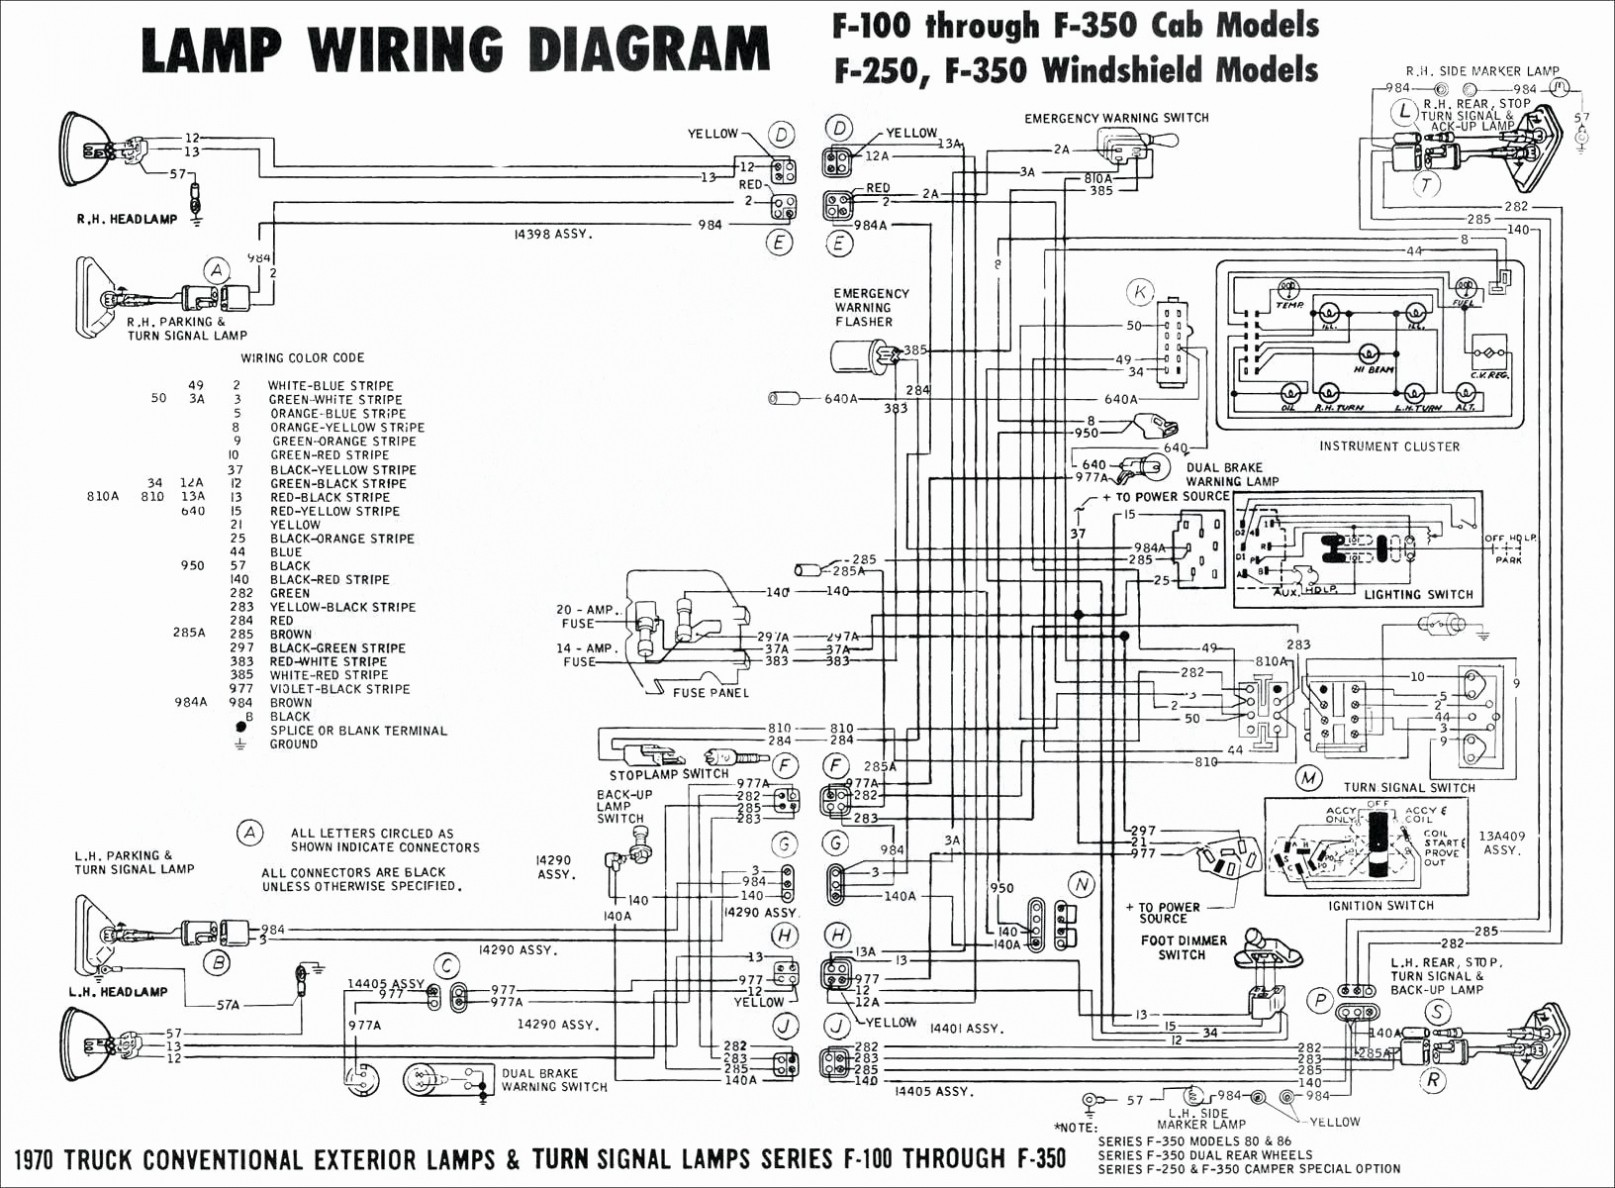 John Deere Lx178 Wiring Diagram | Wiring Diagram on john deere rx75 wiring diagram, john deere x324 wiring diagram, john deere d140 wiring diagram, john deere lt180 wiring diagram, john deere sx85 wiring diagram, john deere ignition switch diagram, john deere s82 wiring diagram, john deere gx335 wiring diagram, john deere gx95 wiring diagram, john deere lx280 wiring diagram, john deere gt245 wiring diagram, john deere z225 wiring-diagram, john deere mower wiring diagram, john deere 145 wiring-diagram, john deere x495 wiring diagram, john deere srx75 wiring diagram, john deere la115 wiring diagram, john deere lx279 wiring diagram, john deere f925 wiring diagram, john deere la140 wiring diagram,